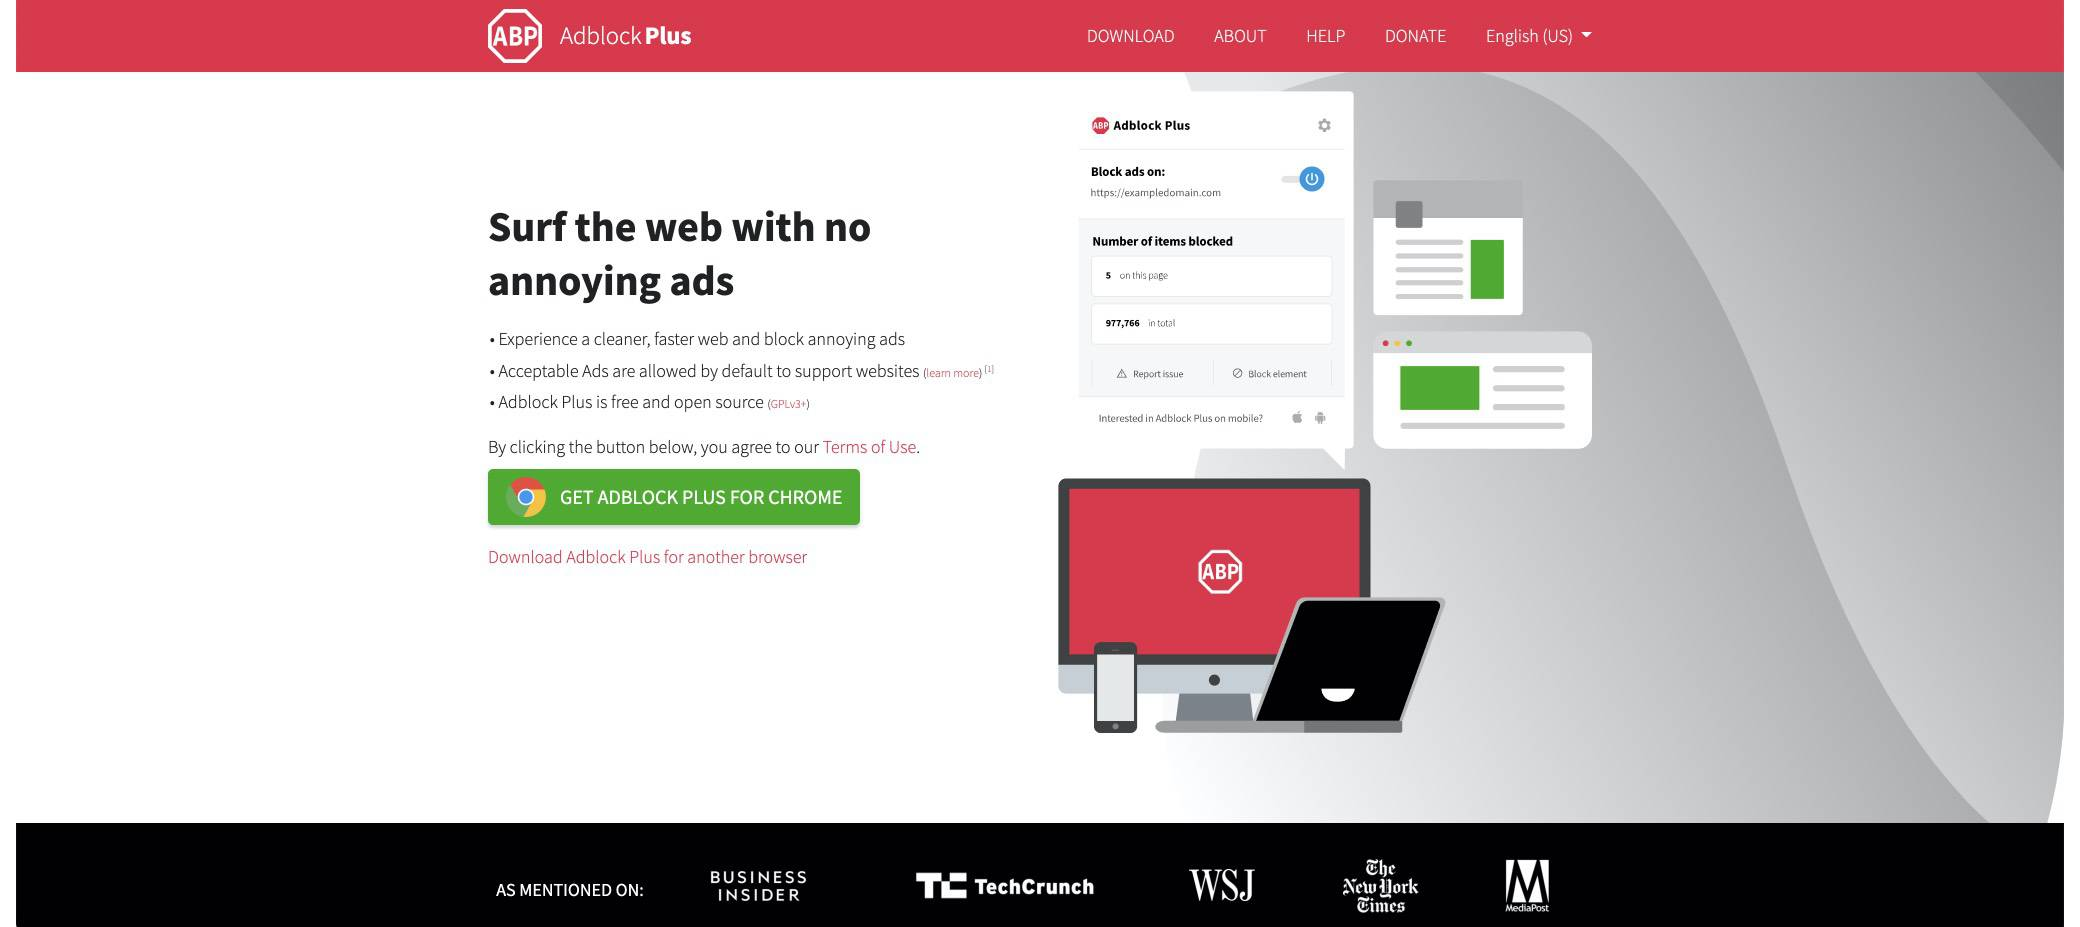 adblockplus screenshot